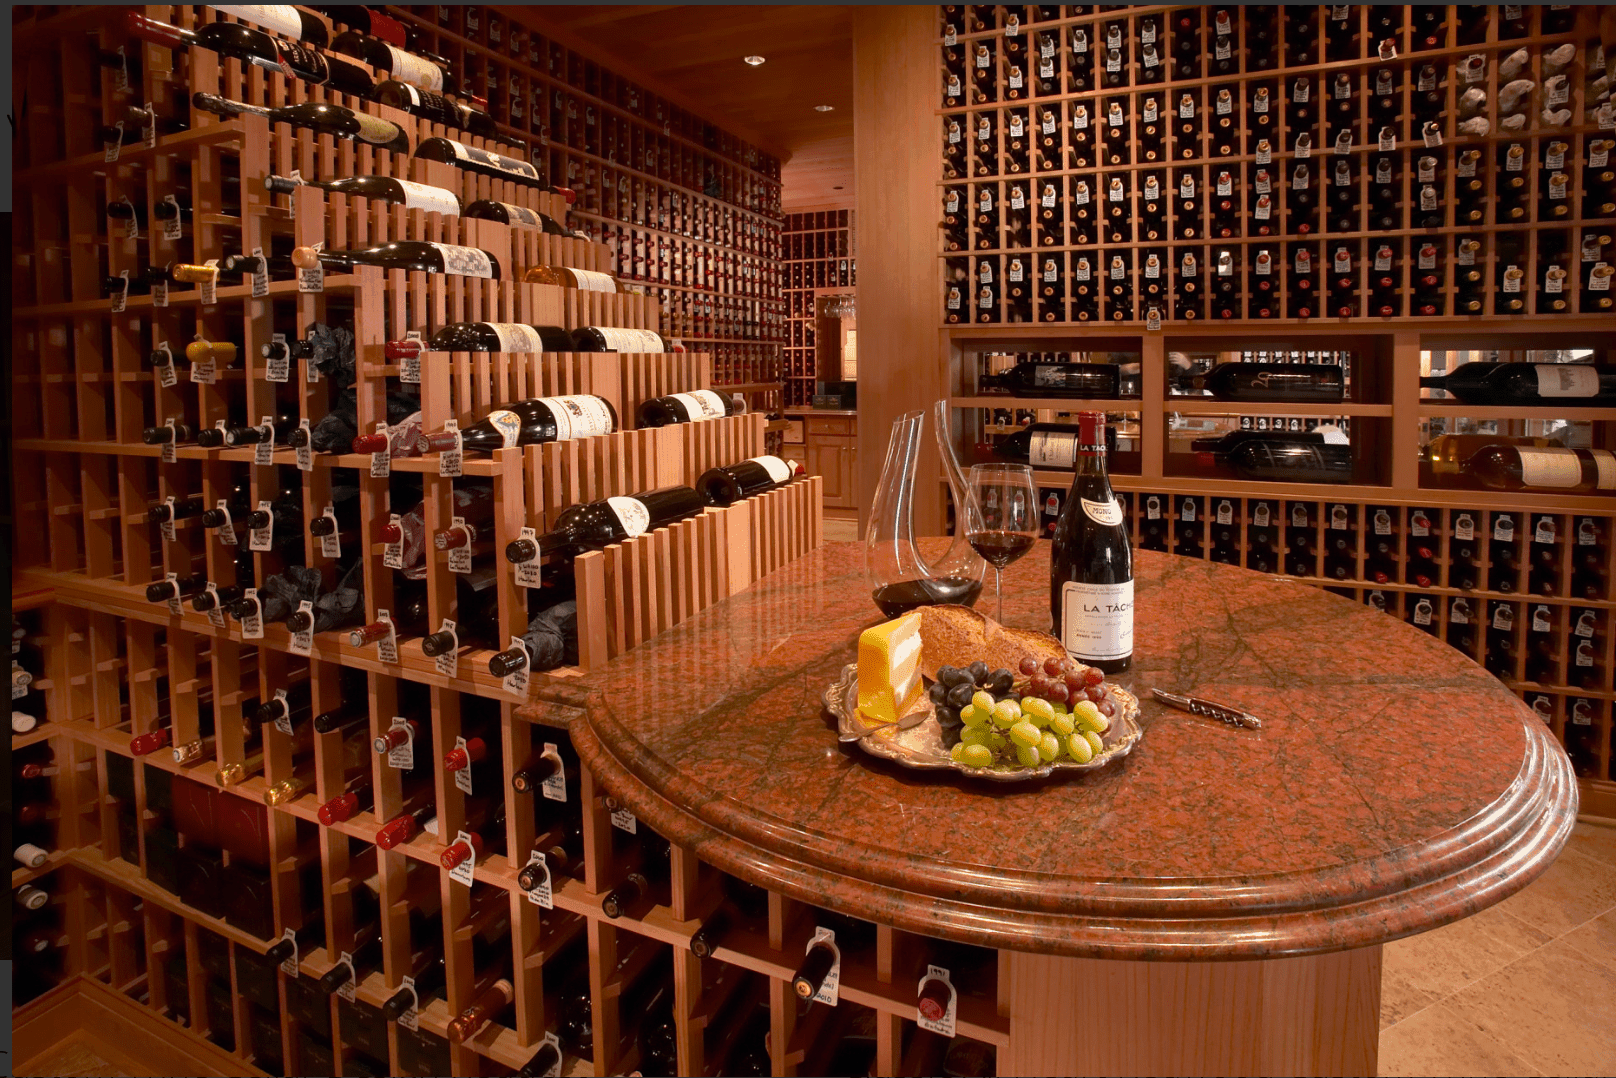 65 superb wine cellar ideas (2018)